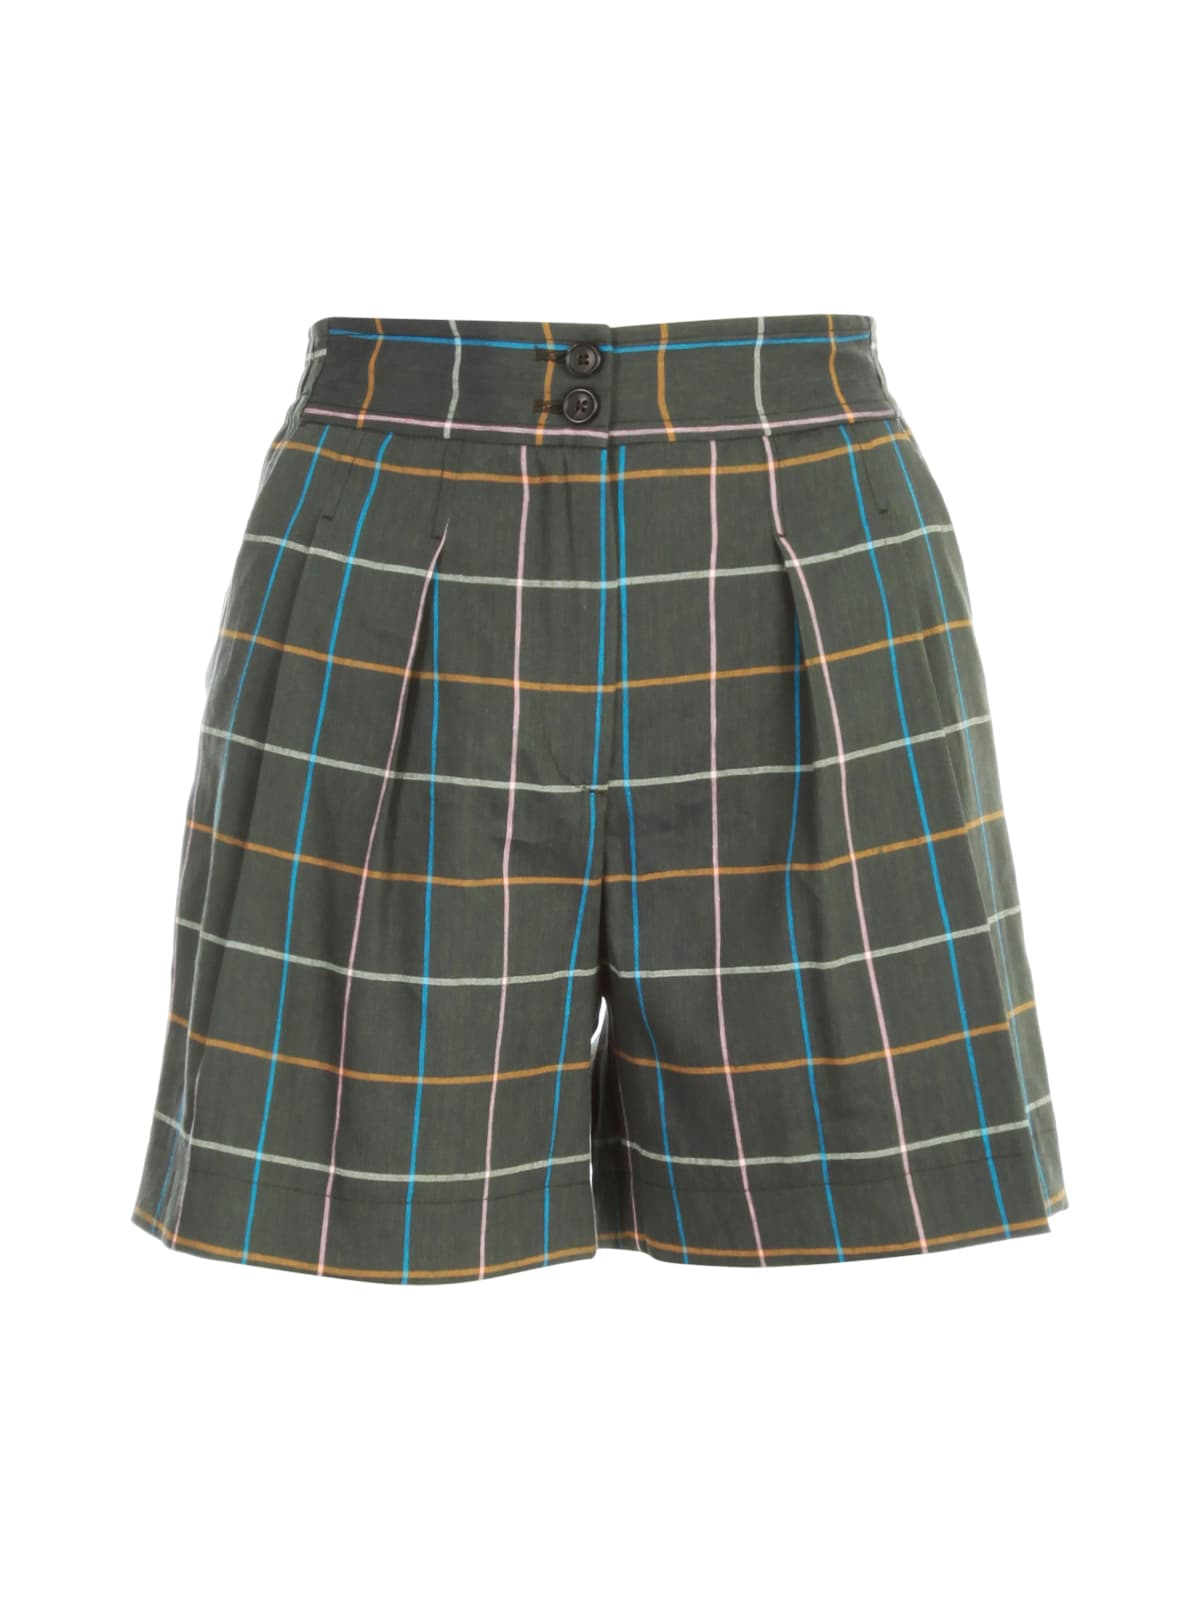 PS by Paul Smith Checked Shorts